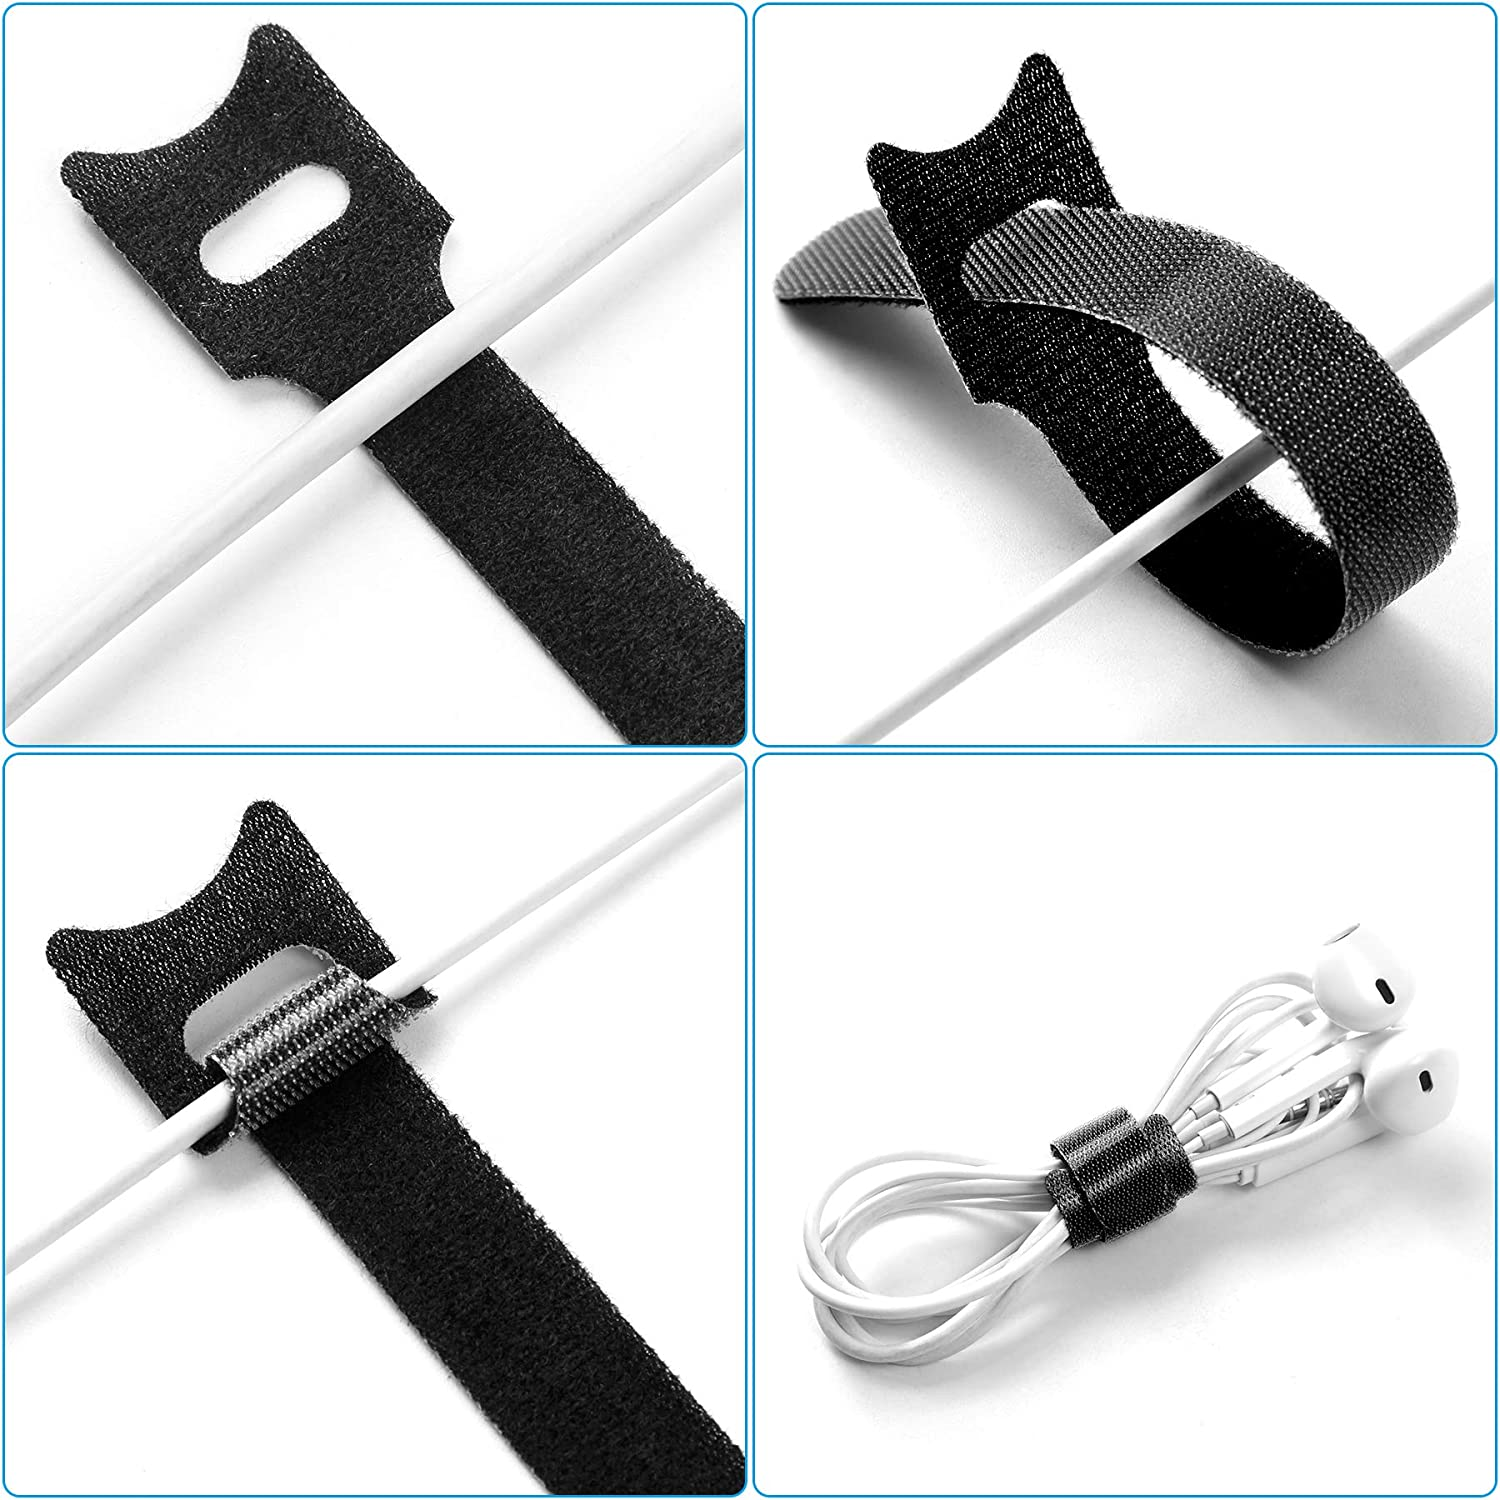 80 Pcs Cable Ties Reusable Cable Straps Adjustable Cable Tidy Ties for Desks Wrap Hook /& Loop White//Black